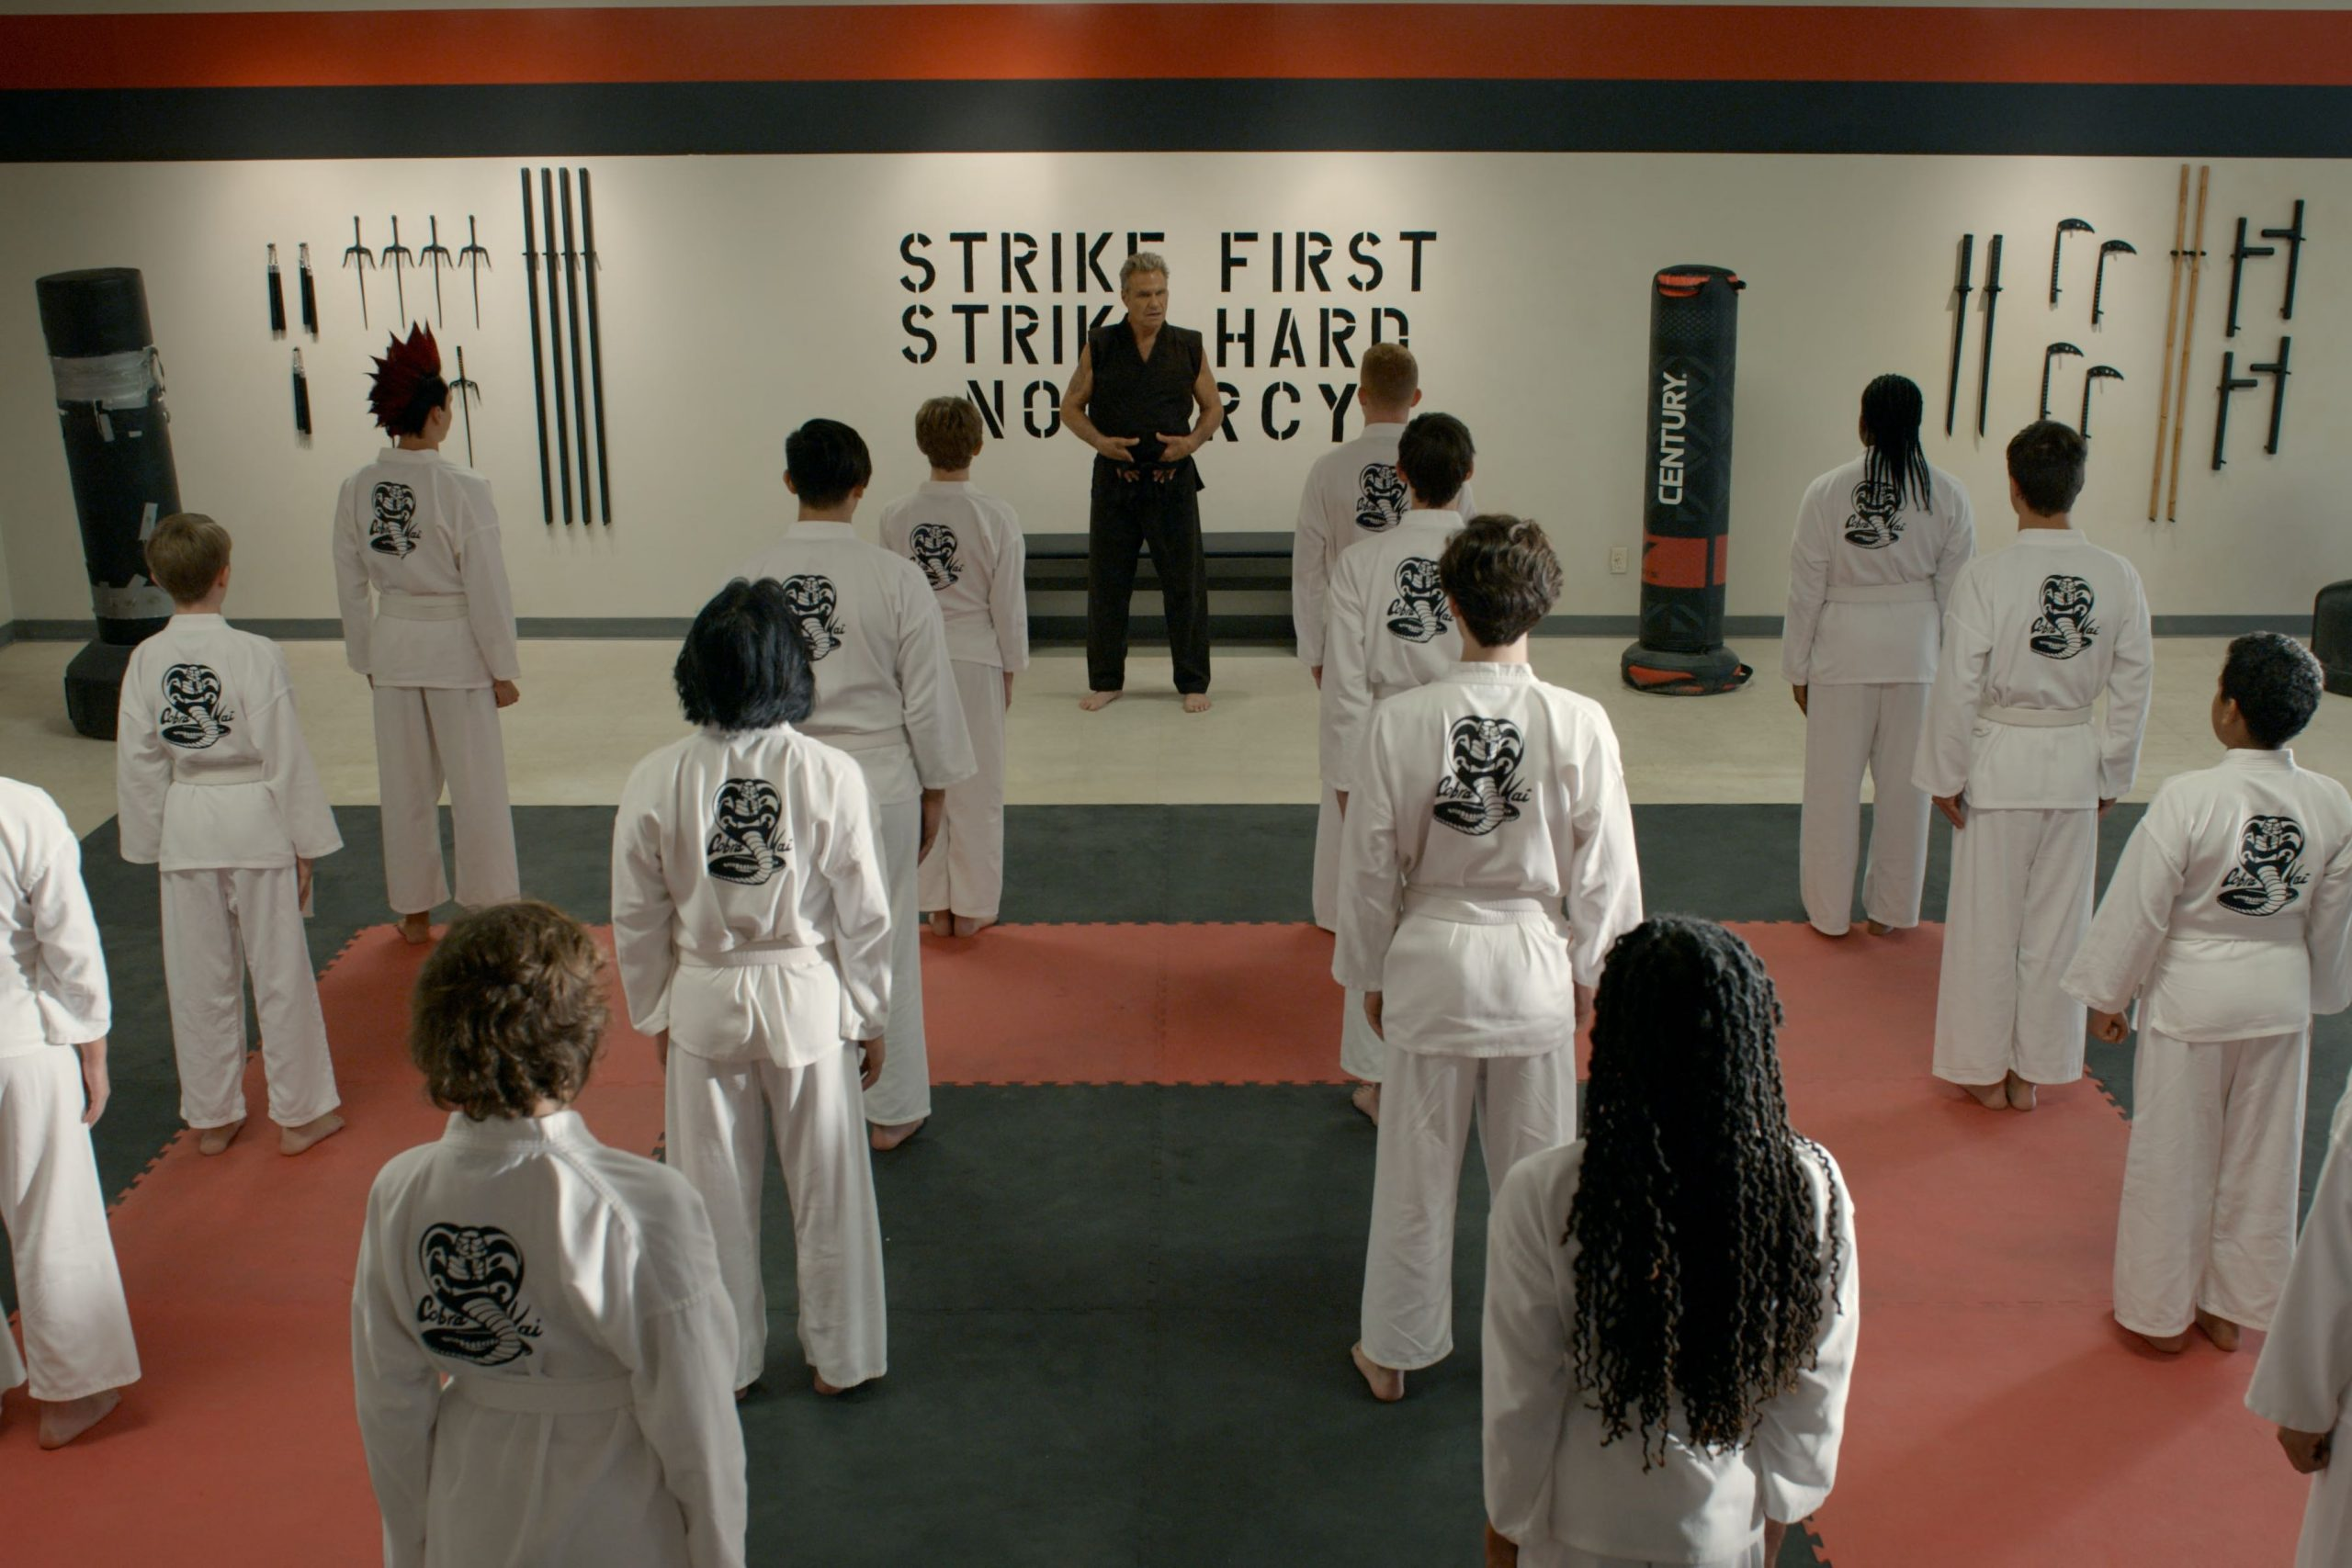 COBRA KAI (L to R) MARTIN KOVE as JOHN KREESE in episode 302 of COBRA KAI Cr. COURTESY OF NETFLIX © 2020